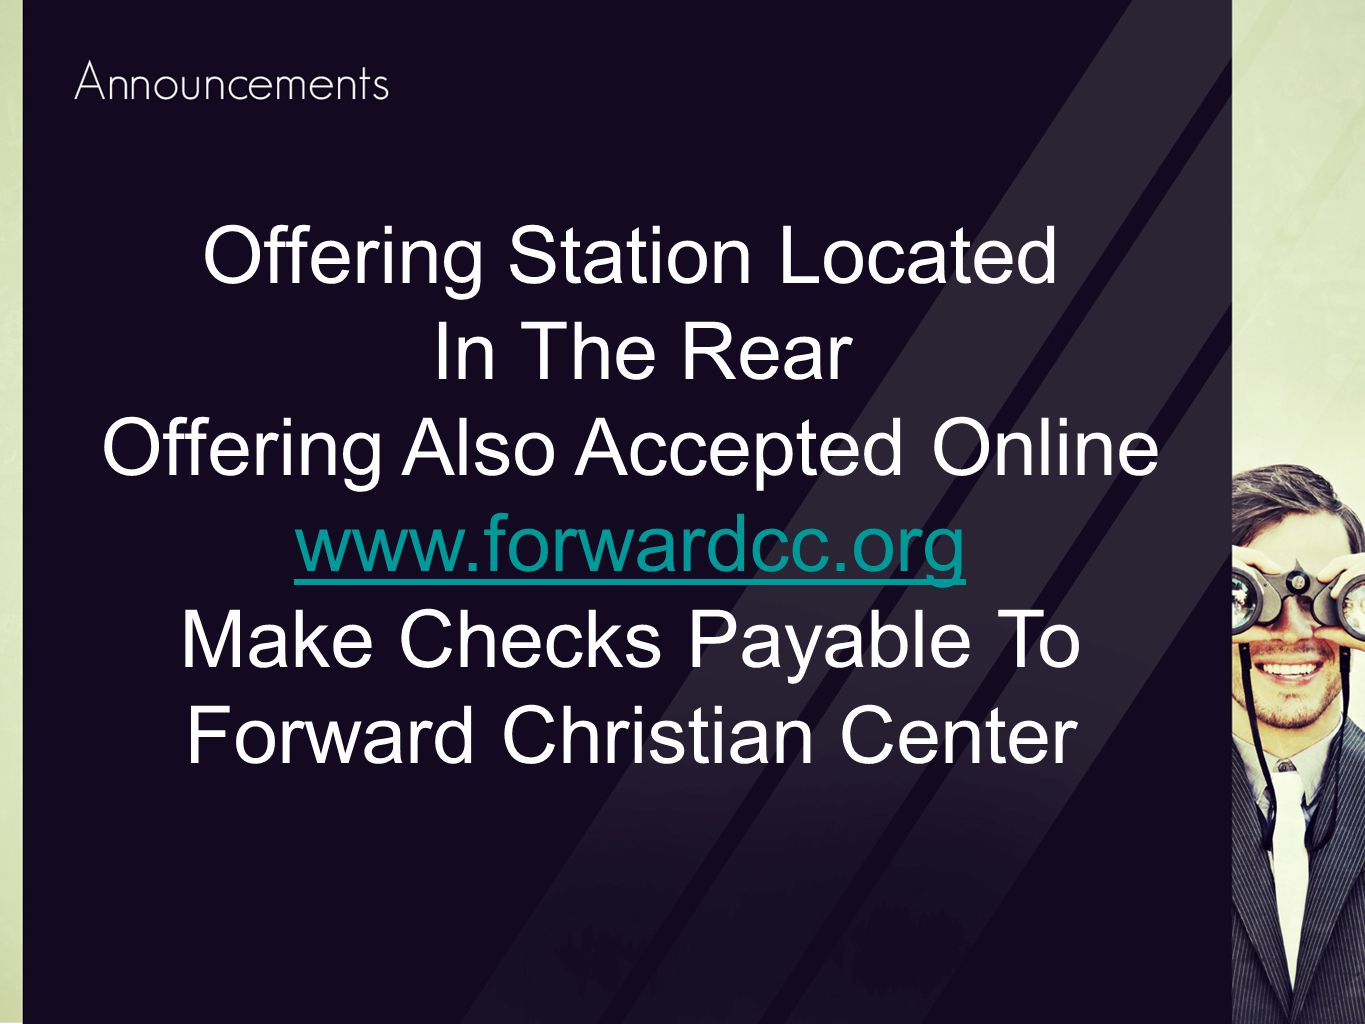 Offering Station Located In The Rear Offering Also Accepted Online www.forwardcc.org Make Checks Payable To Forward Christian Center